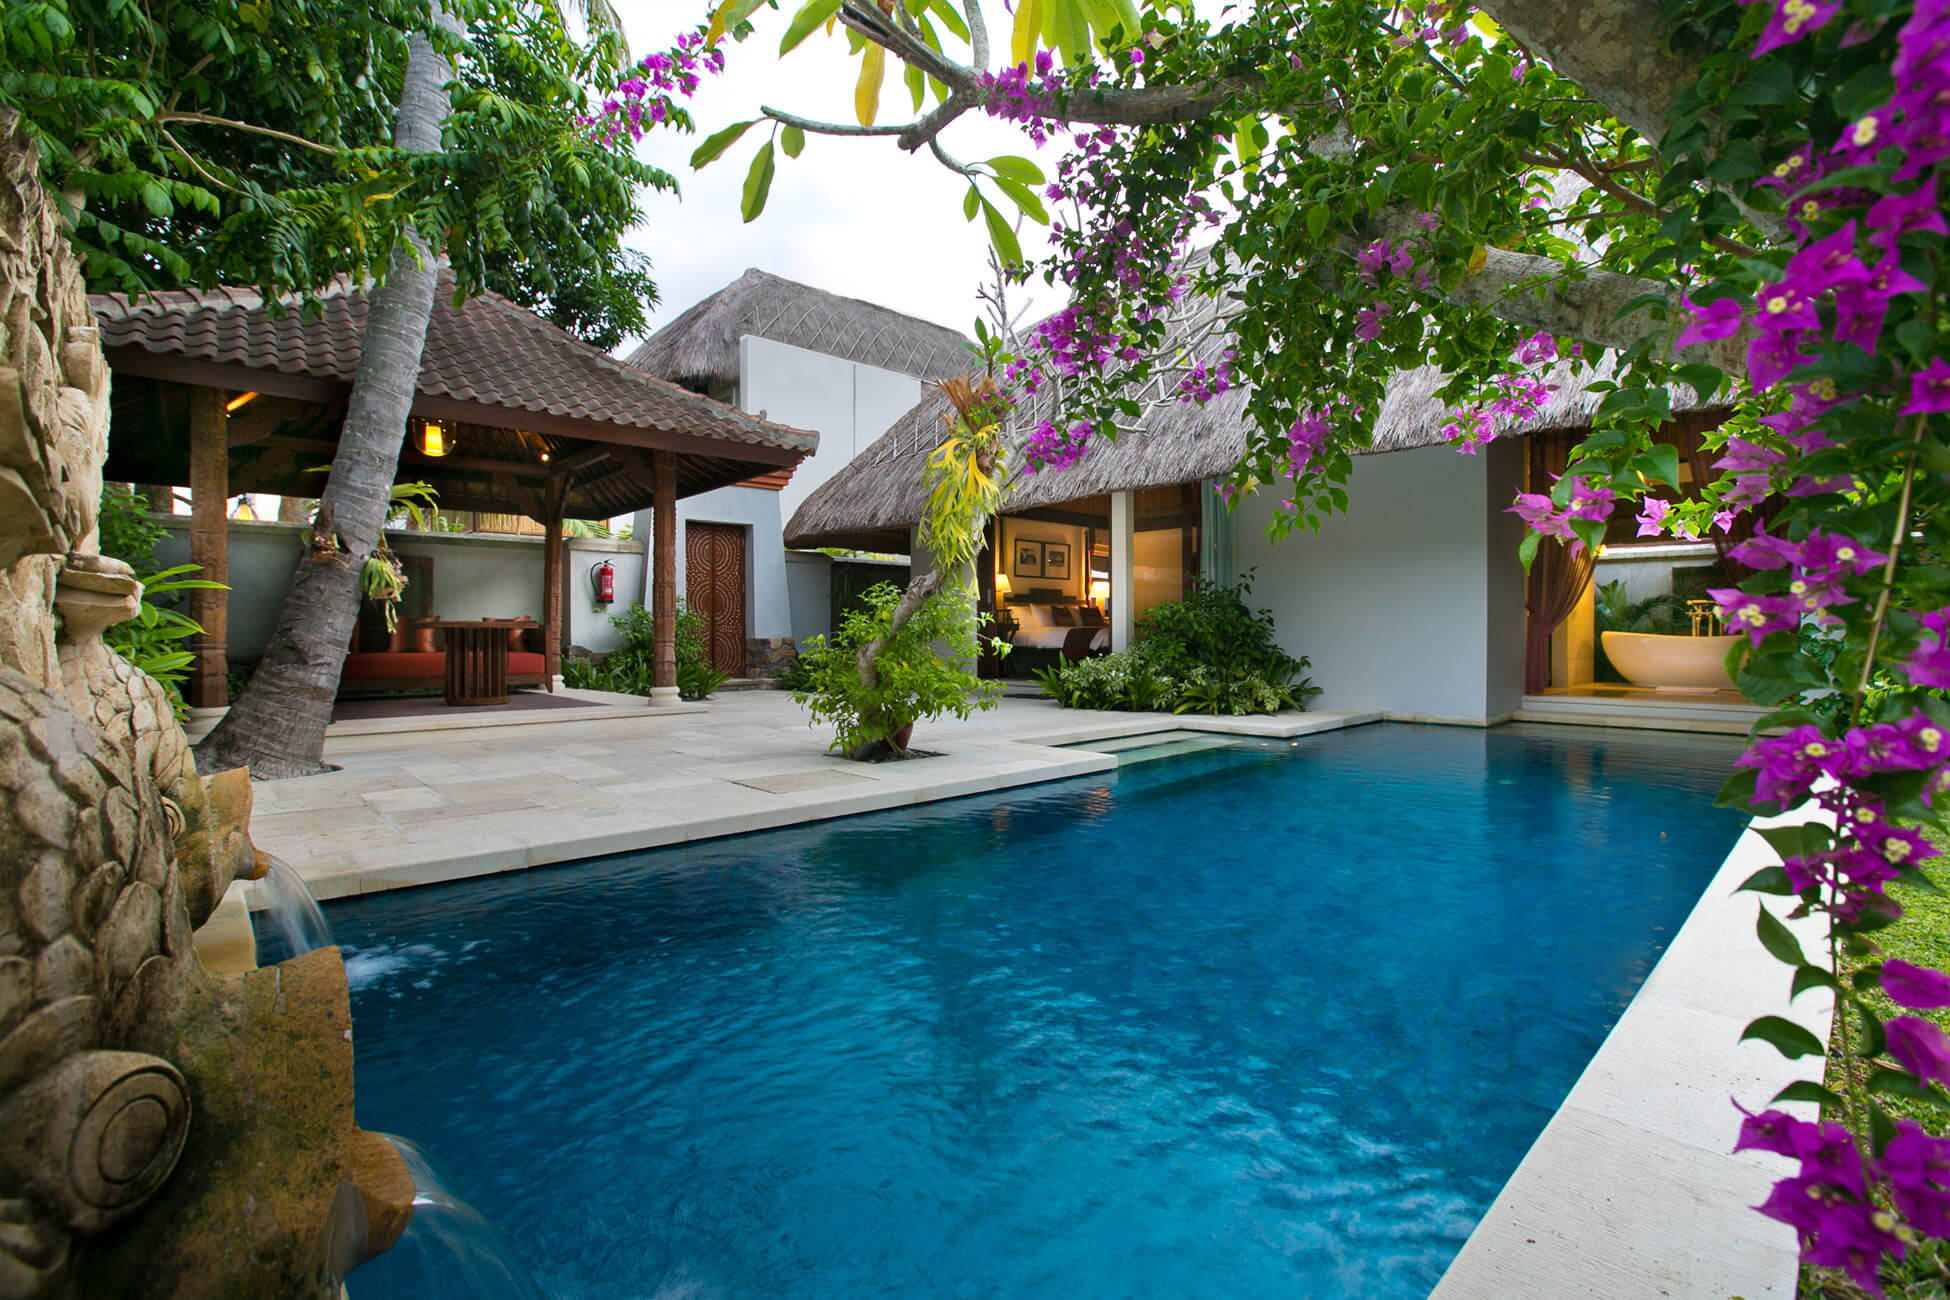 Suranadi private pool villa lombok sudamala resorts - Lombok dive resort ...